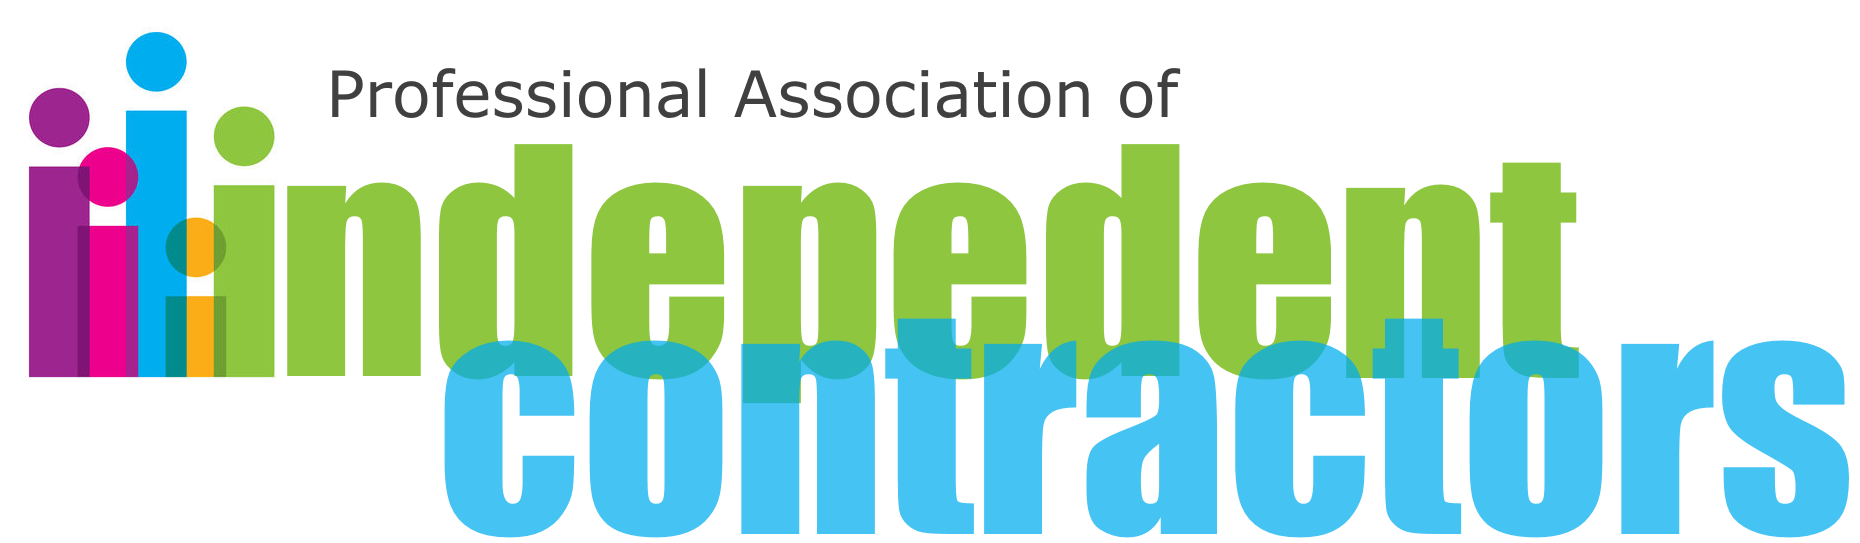 professional association of independent contractors paic is an association whose primary focus is on supporting independent contractors and the independent contractor business model